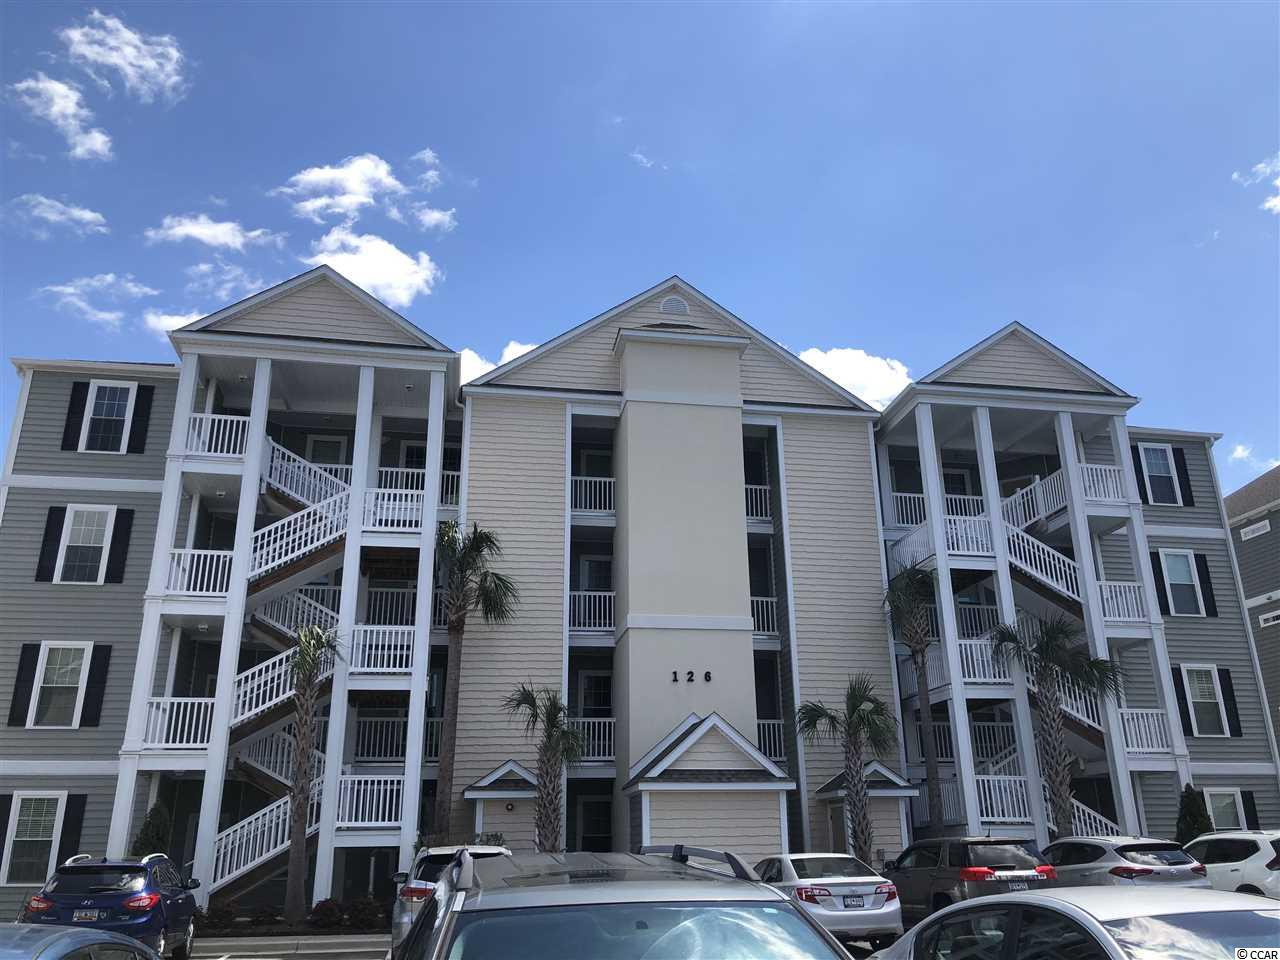 Condo in The Village at Queens Harbour : Myrtle Beach South Carolina